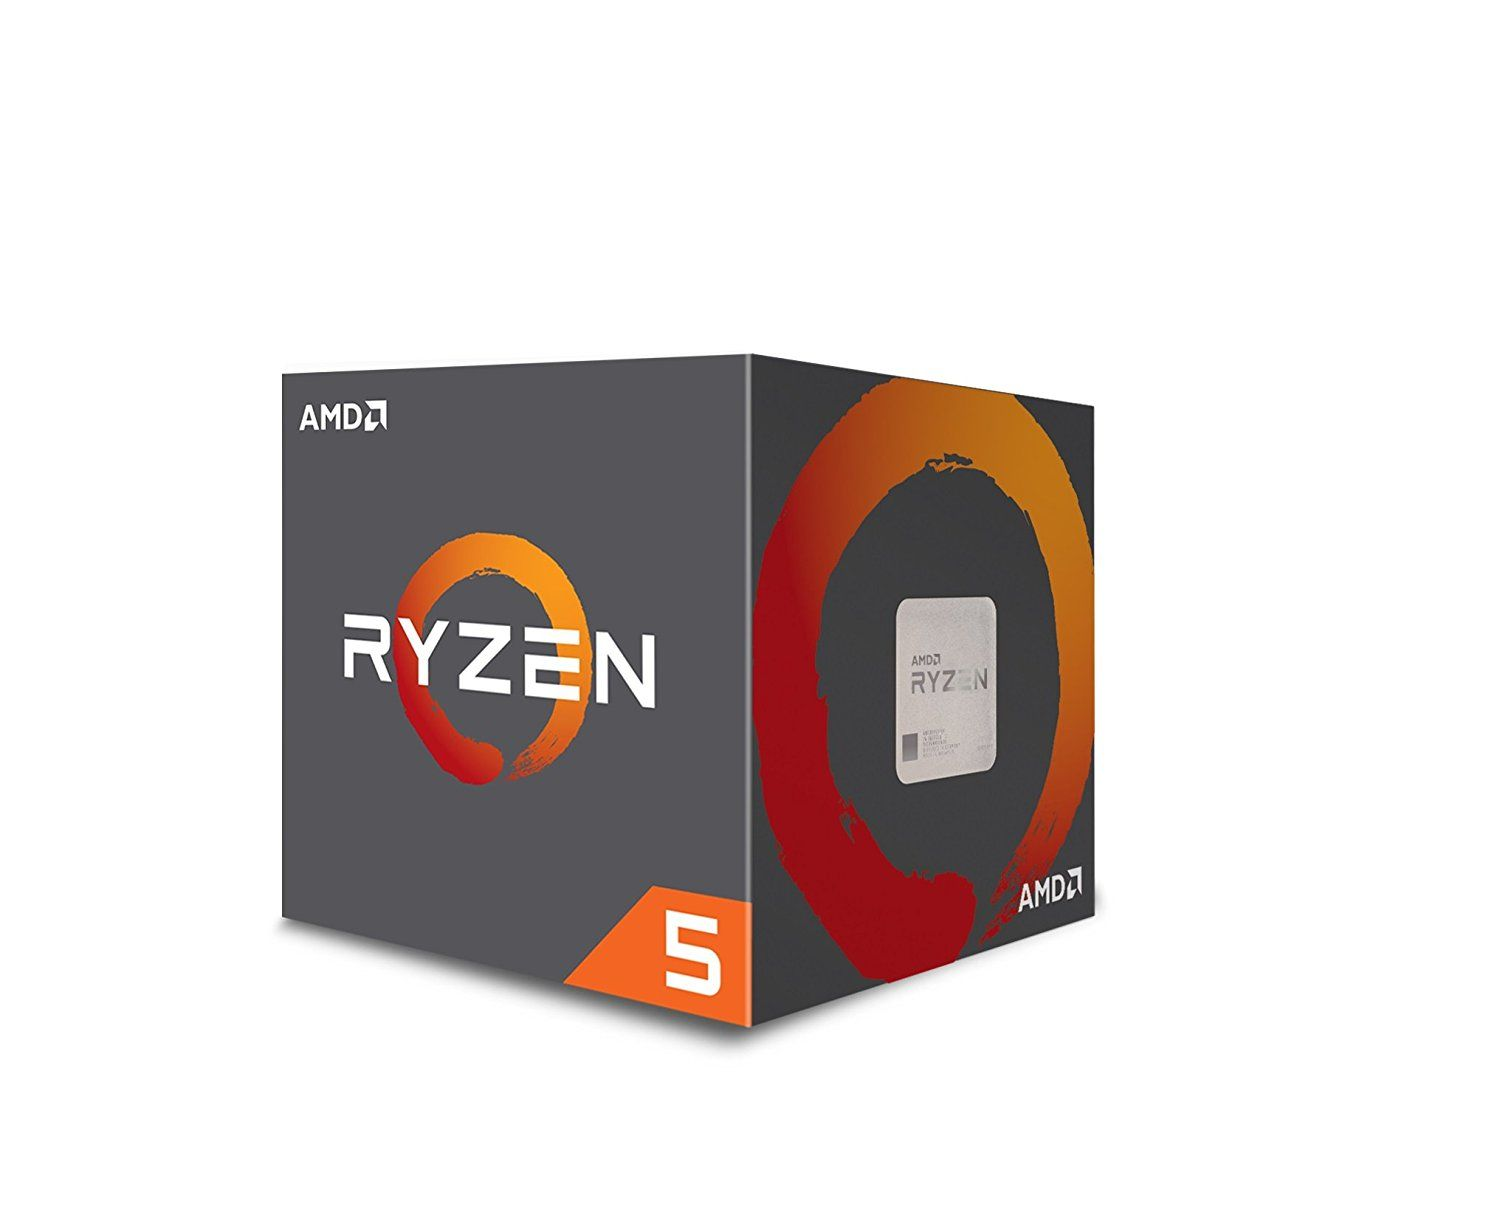 migliore processore pc classifica AMD Ryzen 5 - R5 1500x